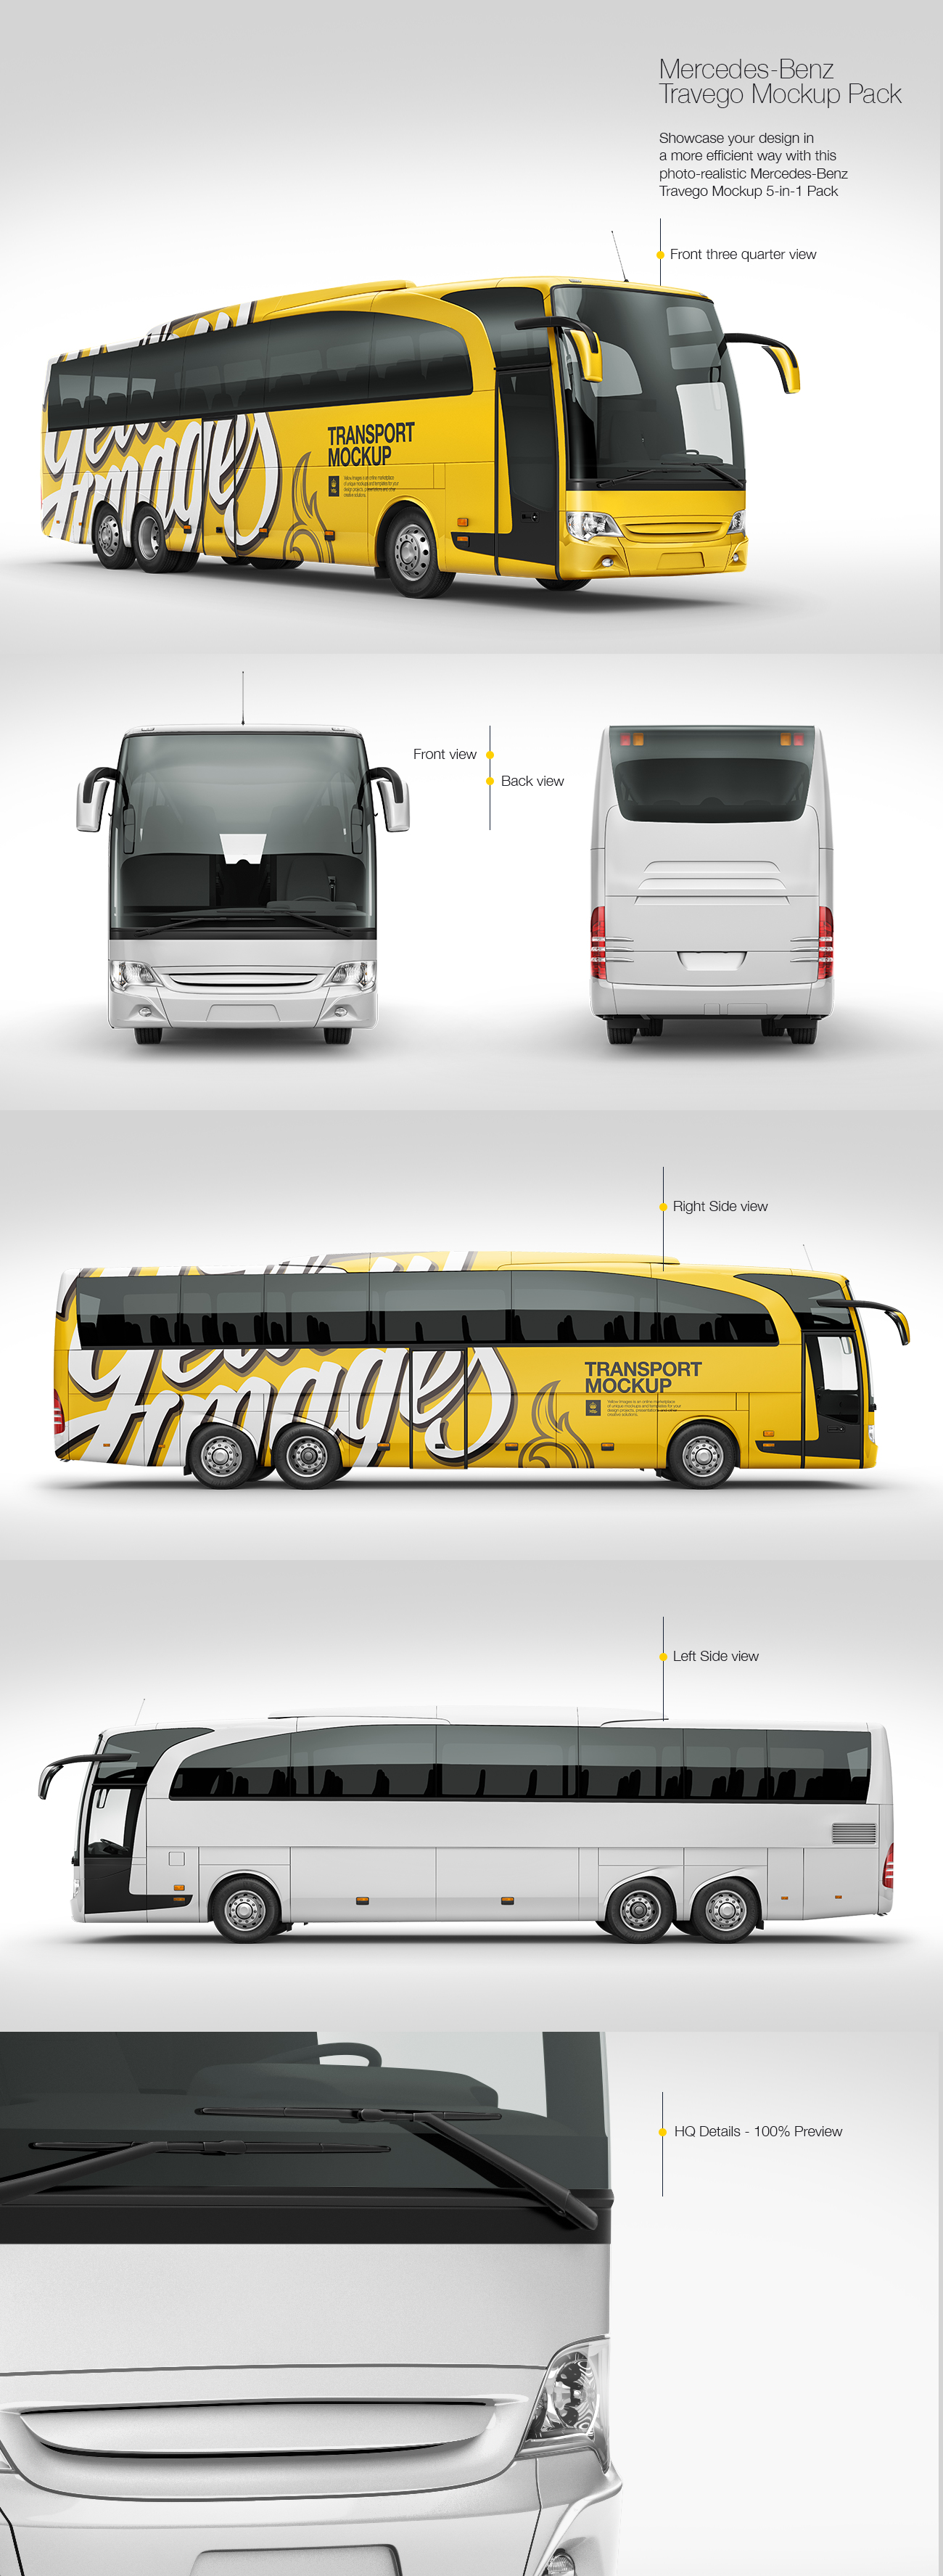 Mercedes-Benz Travego Mockup Pack